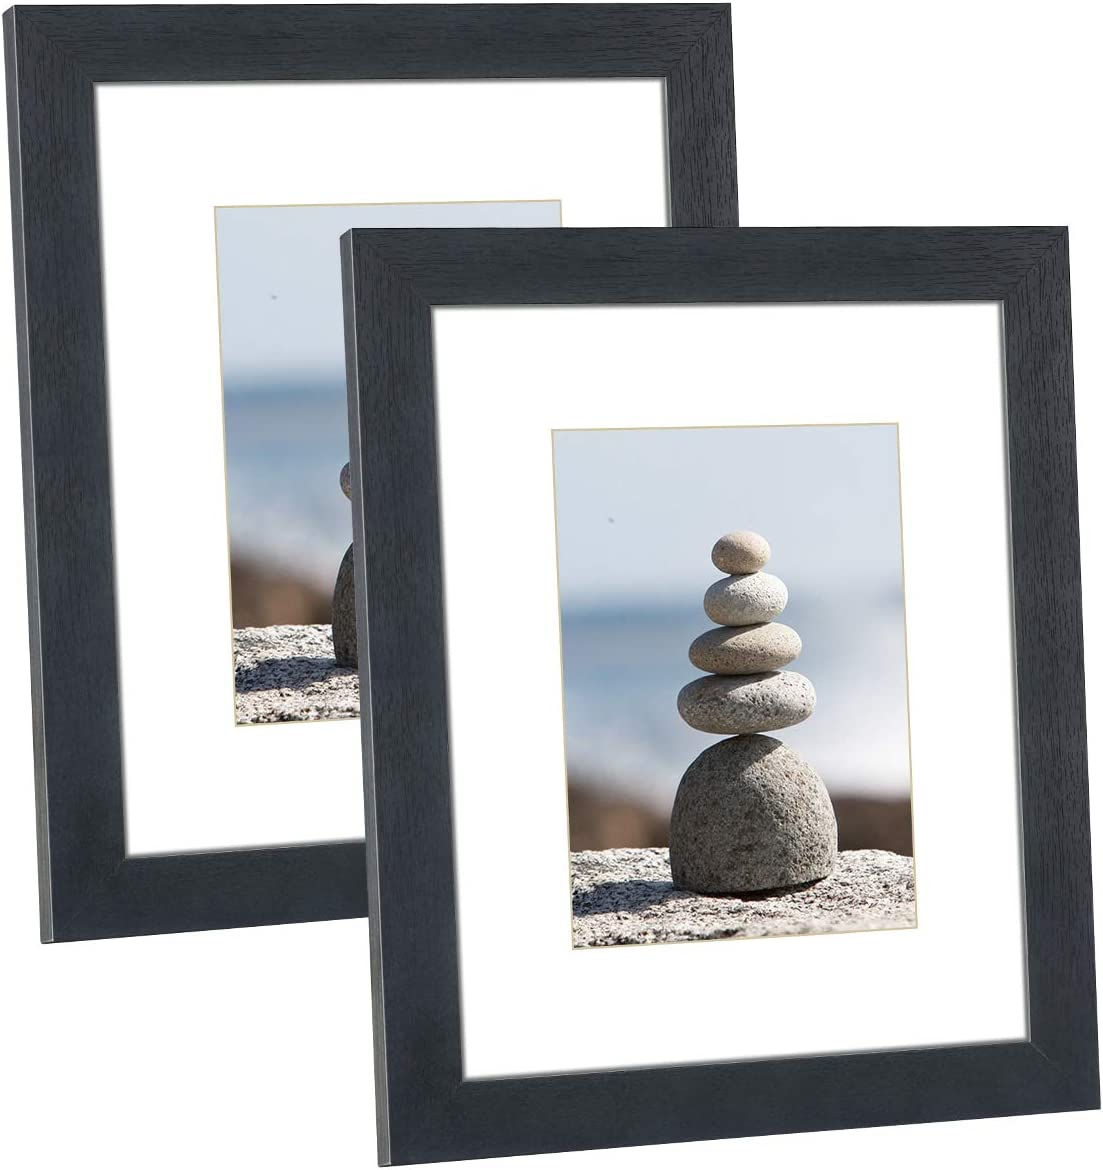 DBWIN 8x10 Picture Frame Black Wood Pattern Photo Frame Real Glass Front 2 Pack,Each Frame with Mat,Display 8x10 Pictures without mat or 5x7 Photos with Mat Wall Decor(LY01-8X10-BK)